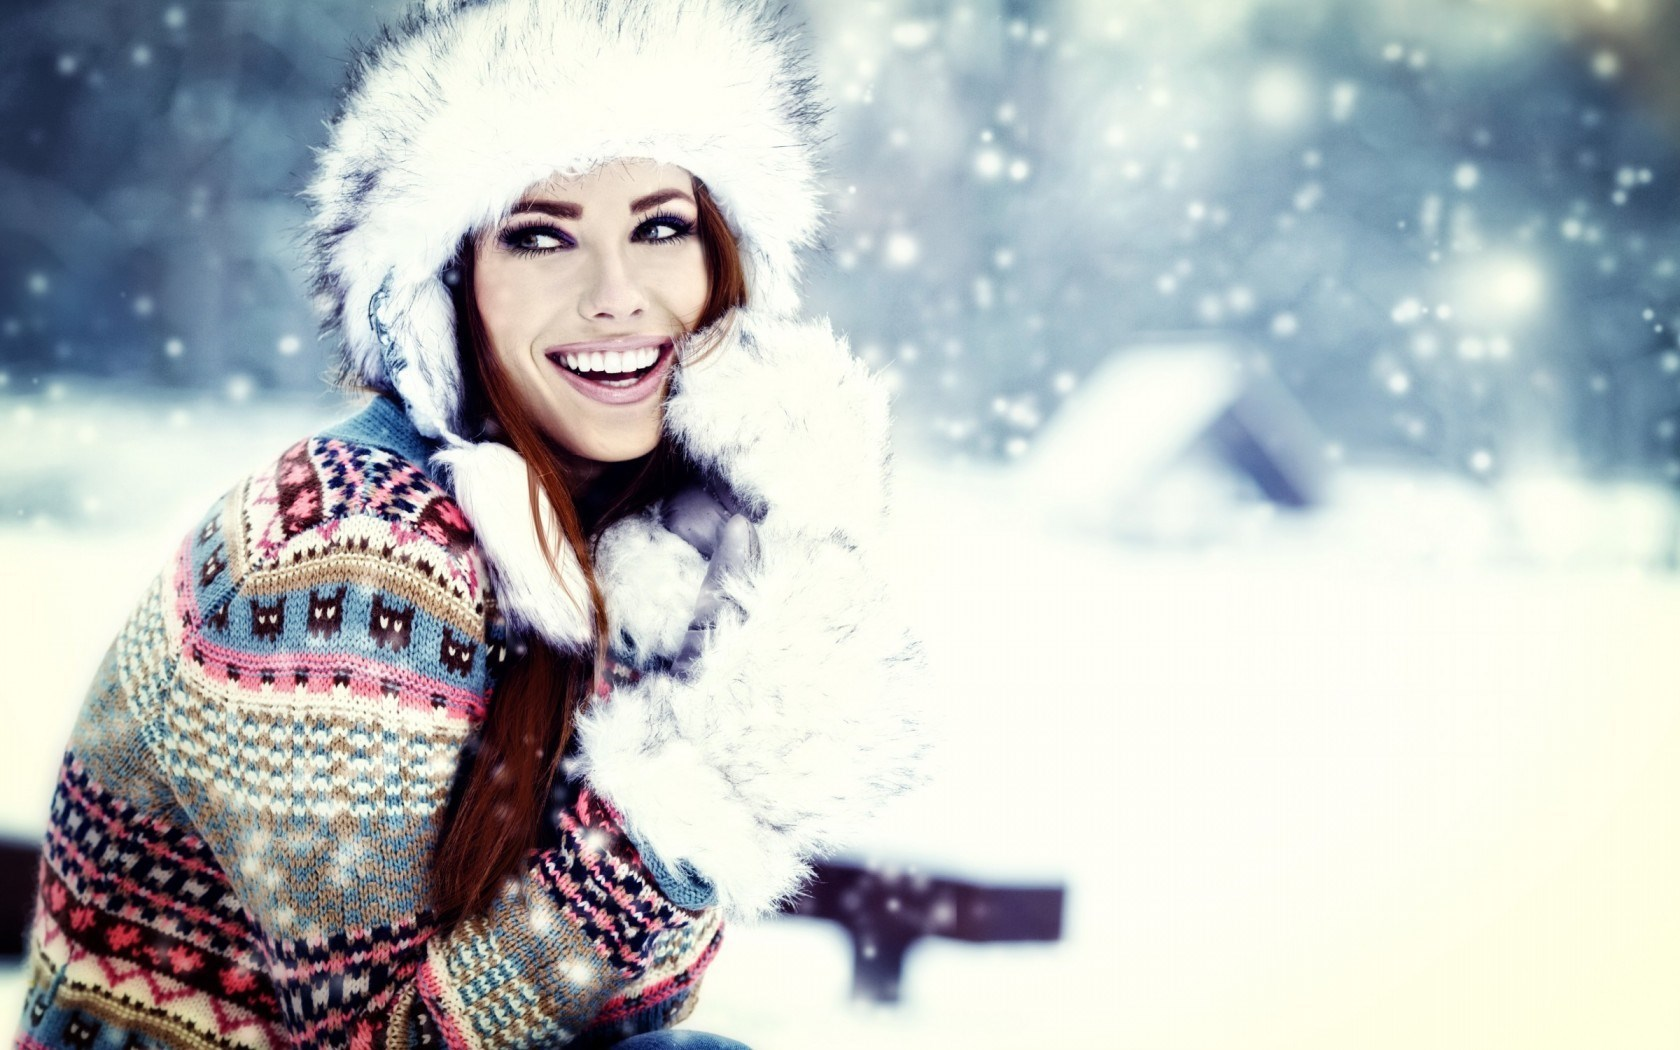 Lovely Girl Smile Winter Snowflakes Fashion